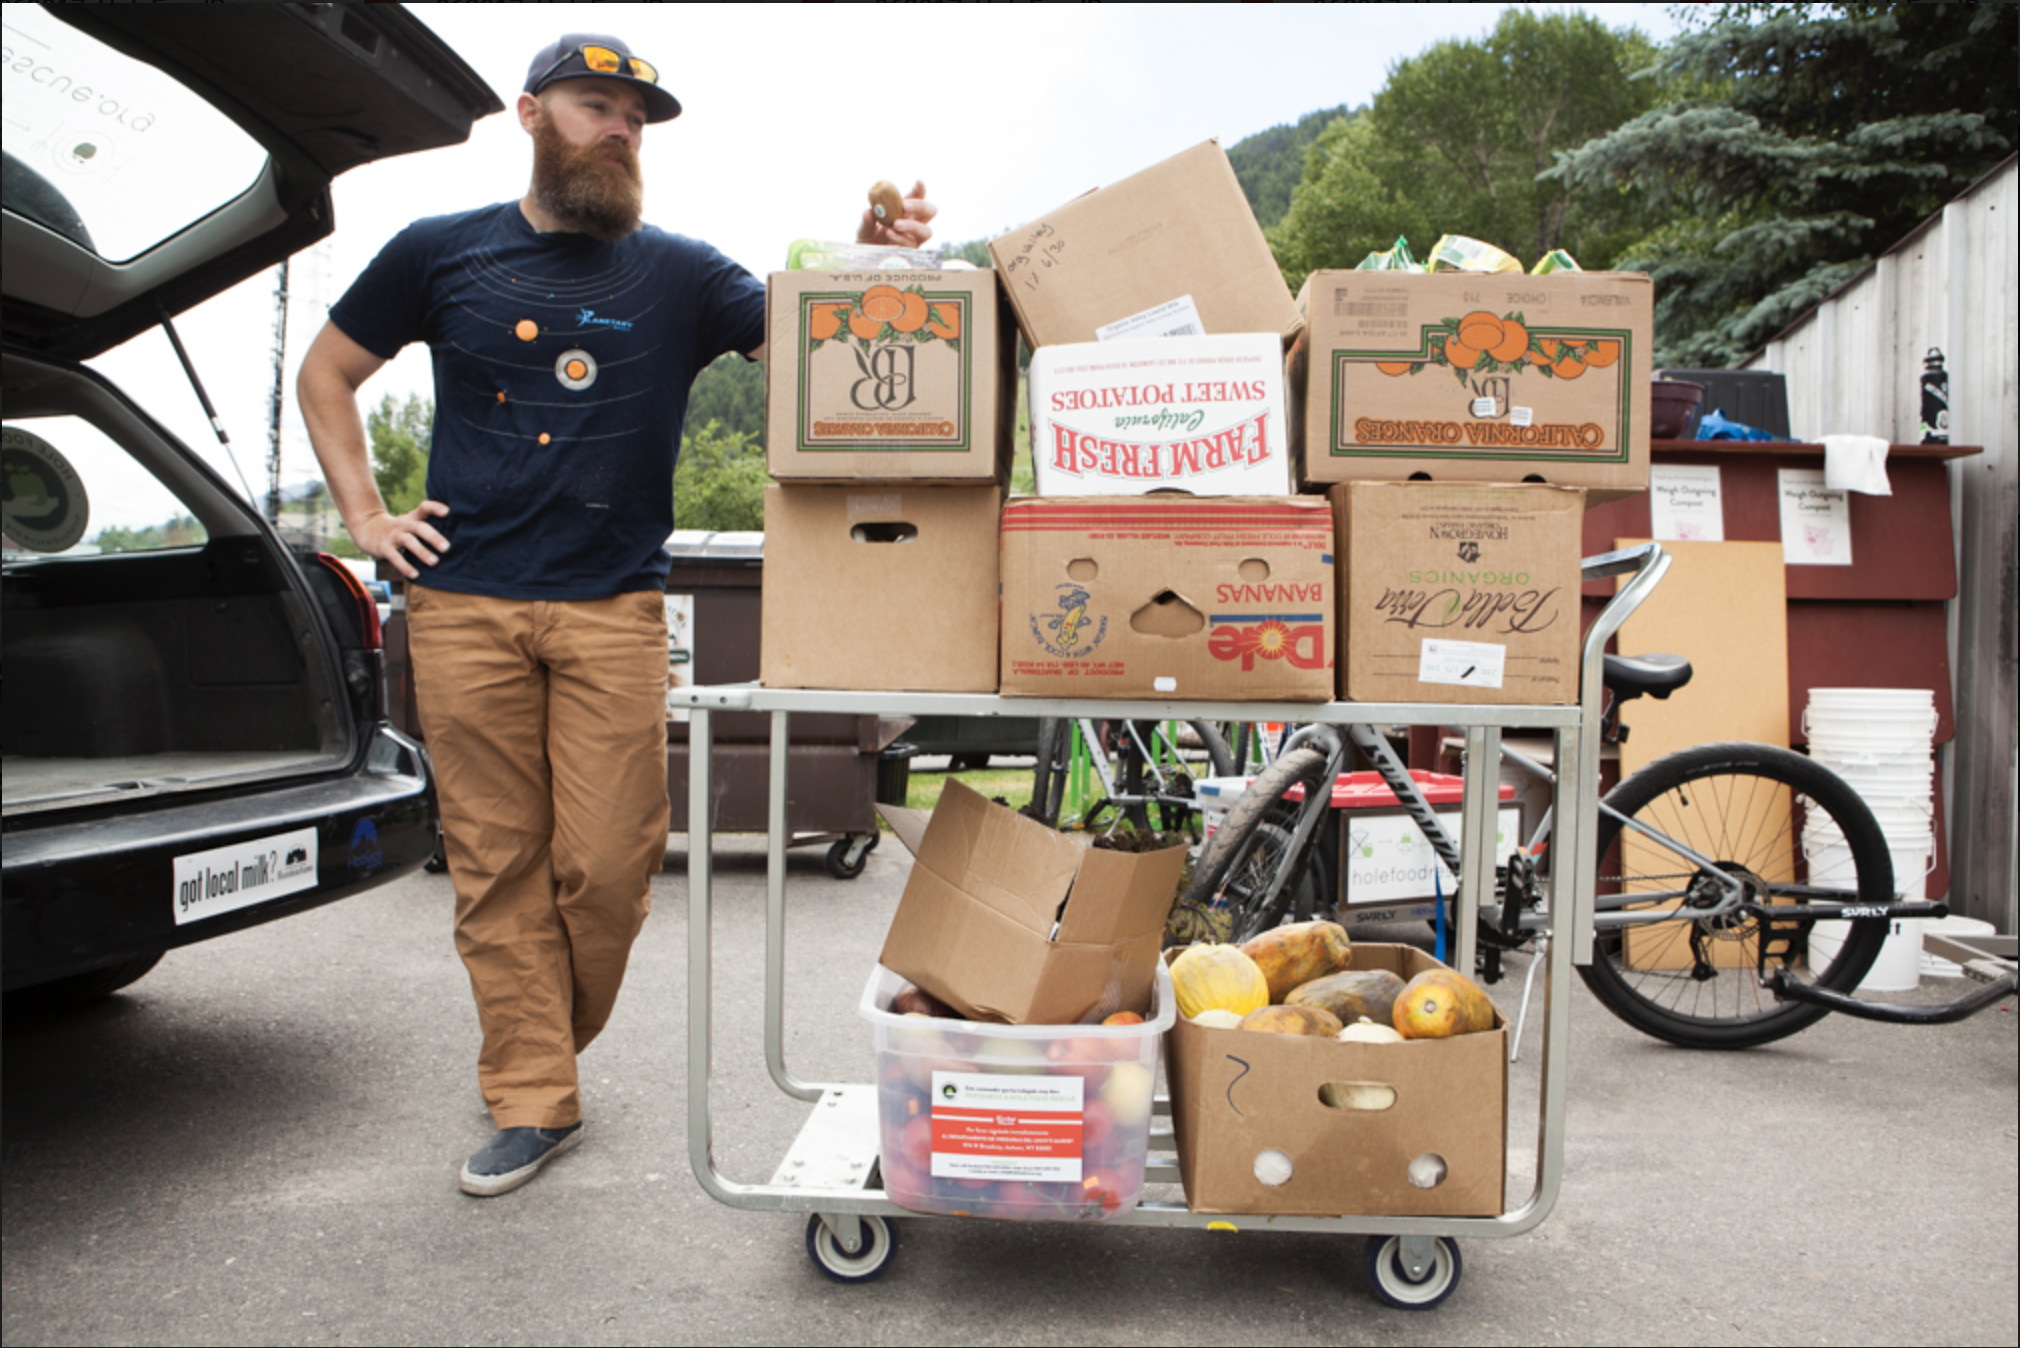 Food Rescue & Redistribution - We save the food and relocate it to where it's needed most.HFR diverted more than 200,000 pounds of excess food from eight local food retailers in 2017 alone, serving roughly 1,000 in-need community members each week. HFR rescues food that would otherwise be wasted due to surplus, cosmetic imperfections, and approaching expiration dates. Much of the food HFR rescues is highly nutritious fruits and vegetables, as these foods have a shorter shelf life than shelf-stable, processed food.Since HFR launched in 2013, it has provided at-risk youth, families, and seniors with nutritious food that expands the efforts of local food pantries and kitchens. Rescued food that isn't distributed to people is fed to farm animals or composted, further reducing contributions to our local landfill.